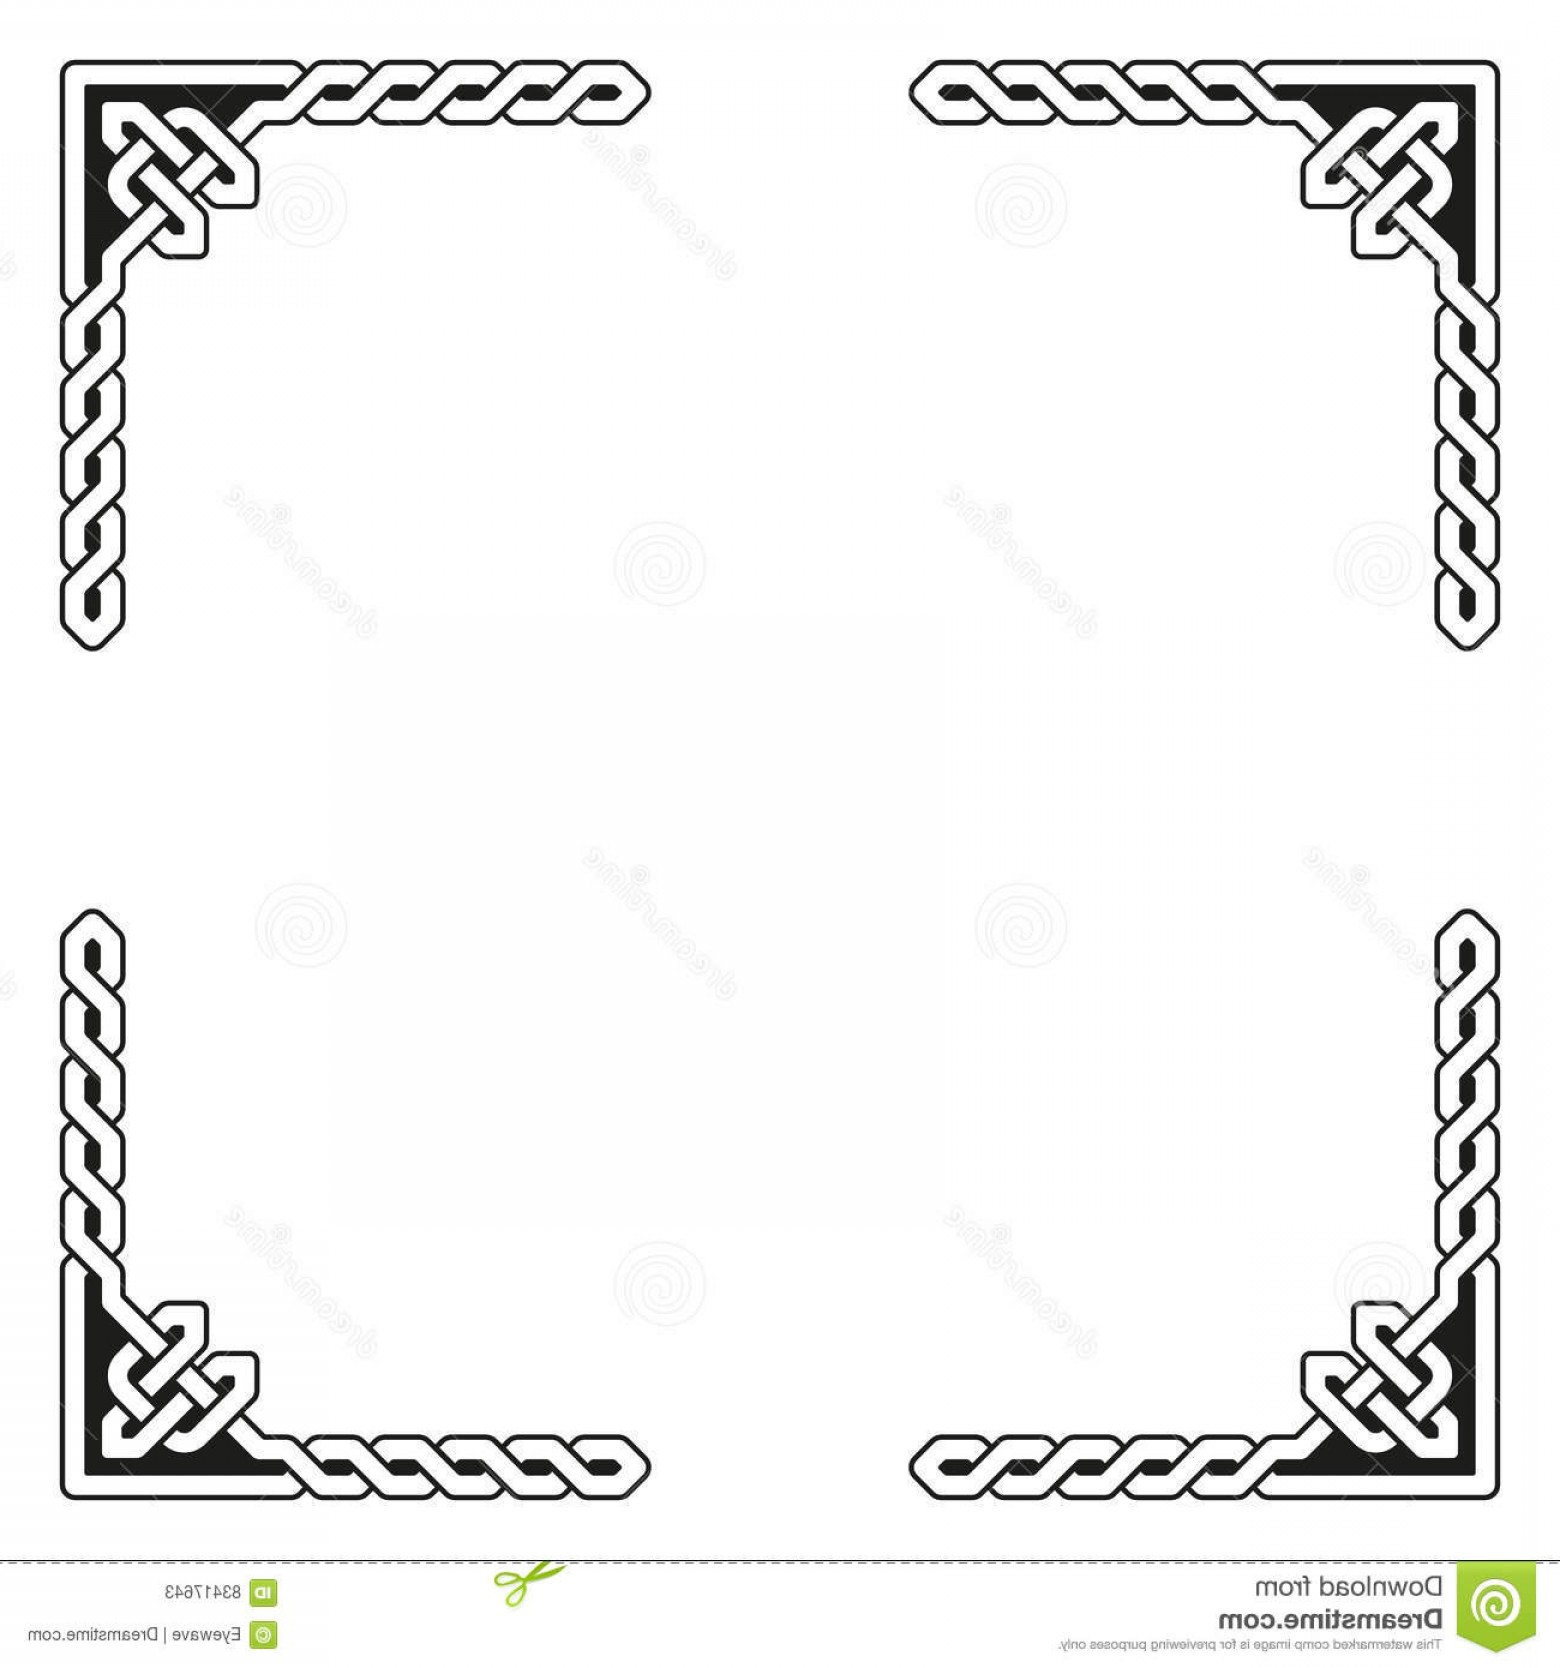 Medieval Frames Vector: Stock Illustration Decorative Celtic Frame Vector Illustration Traditional Braided Elements Image